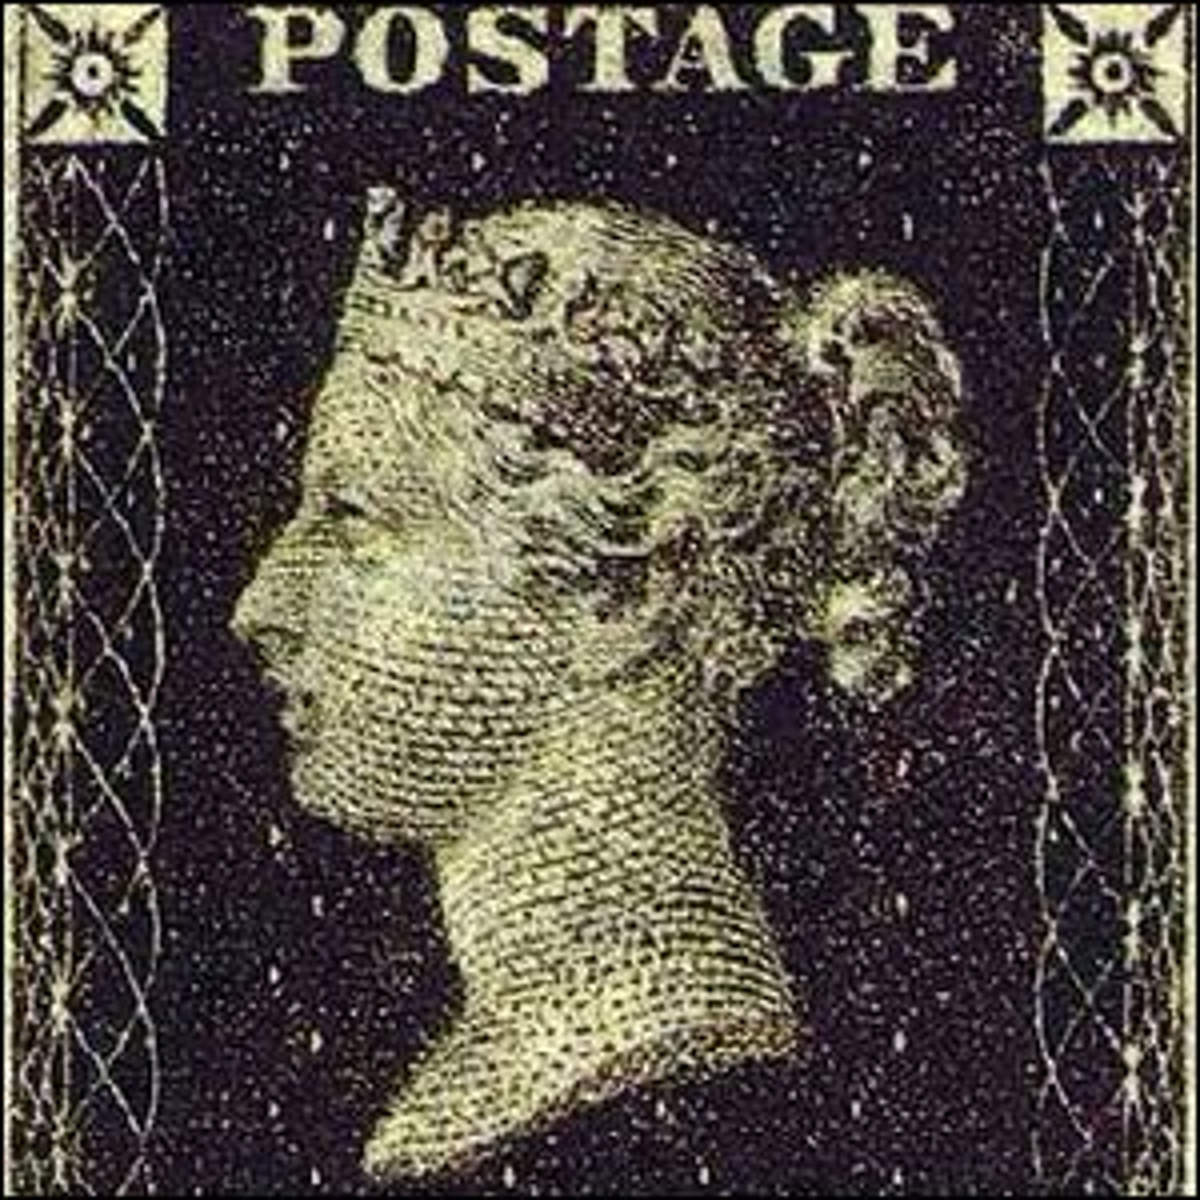 The world's first adhesive postage stamp used in a public postal system, the Penny Black, Great Britain, 1840.